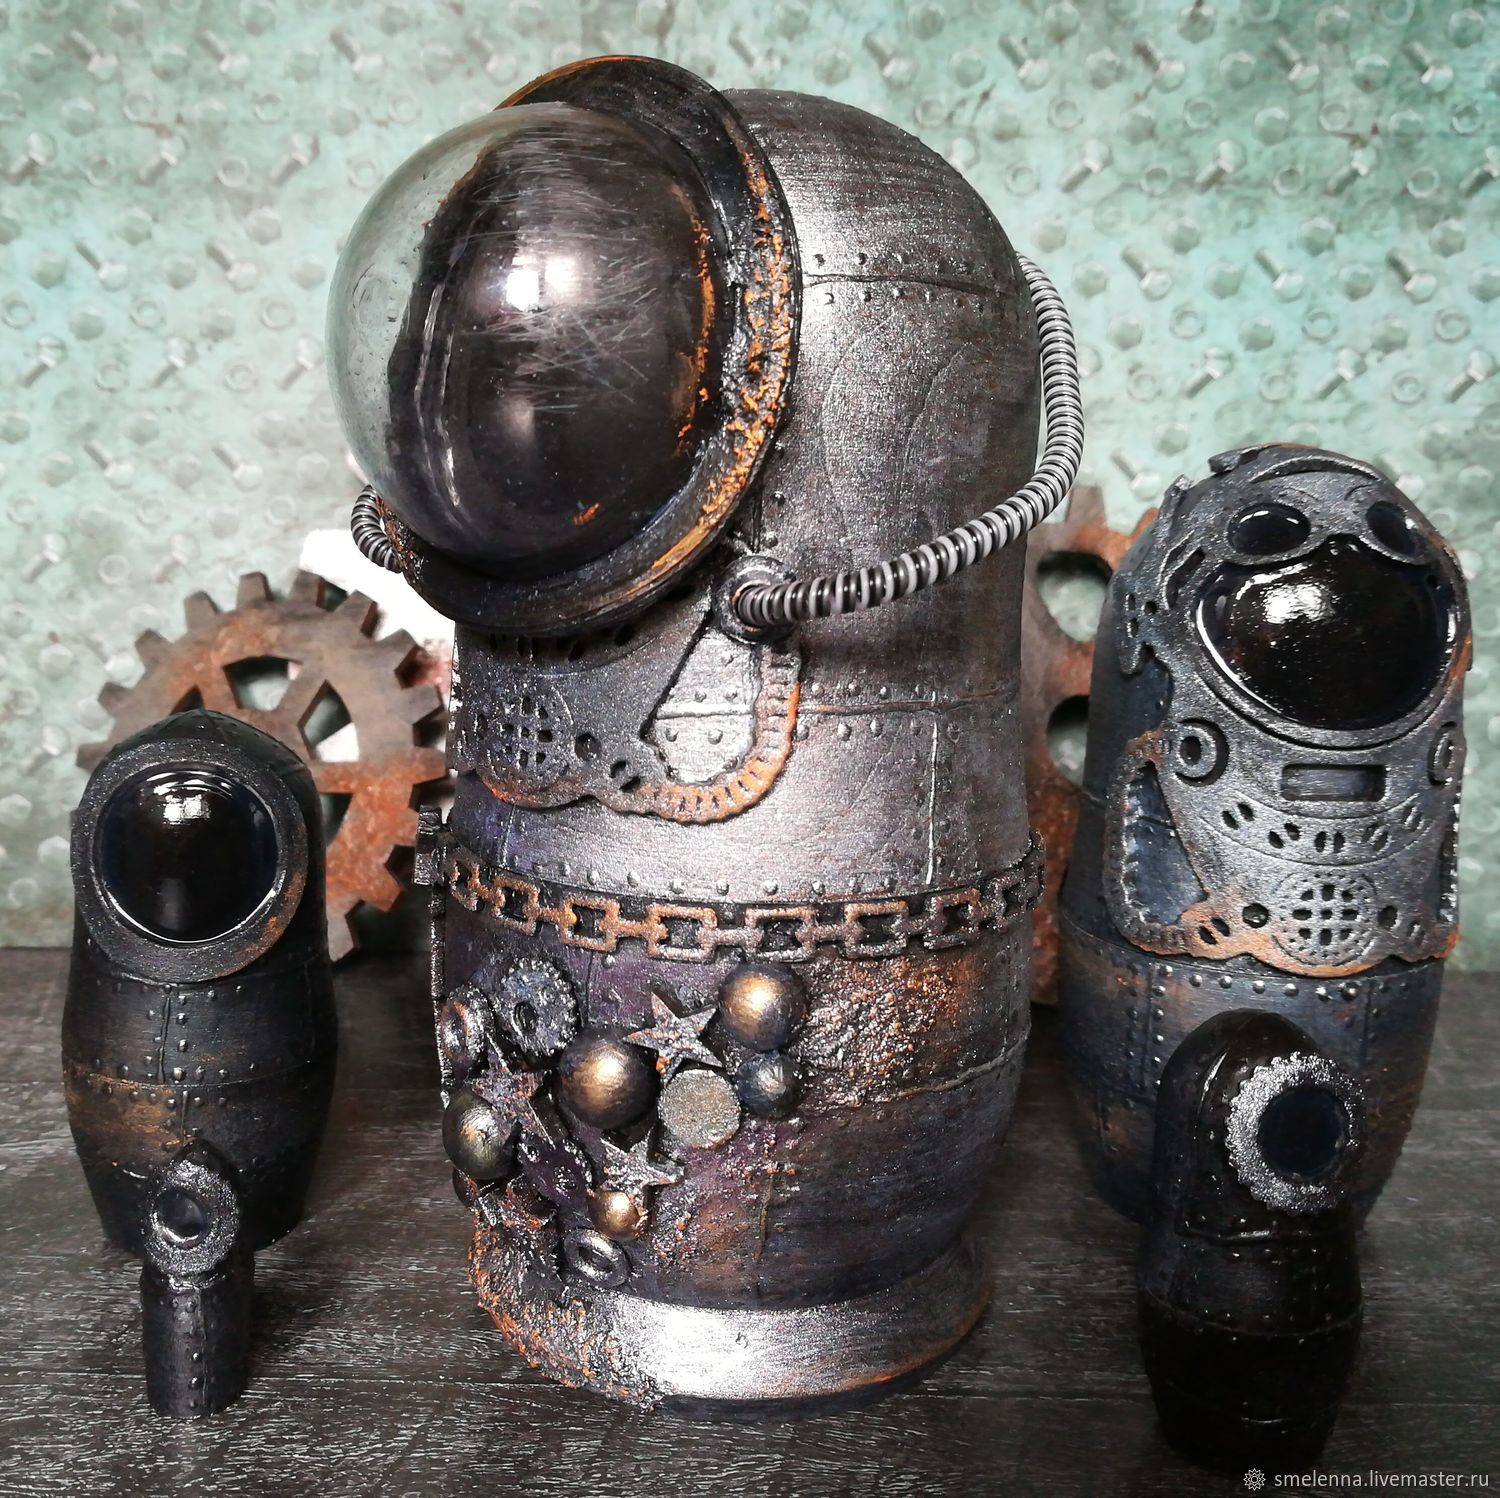 Hand made steampunk style works by G_OldBolt